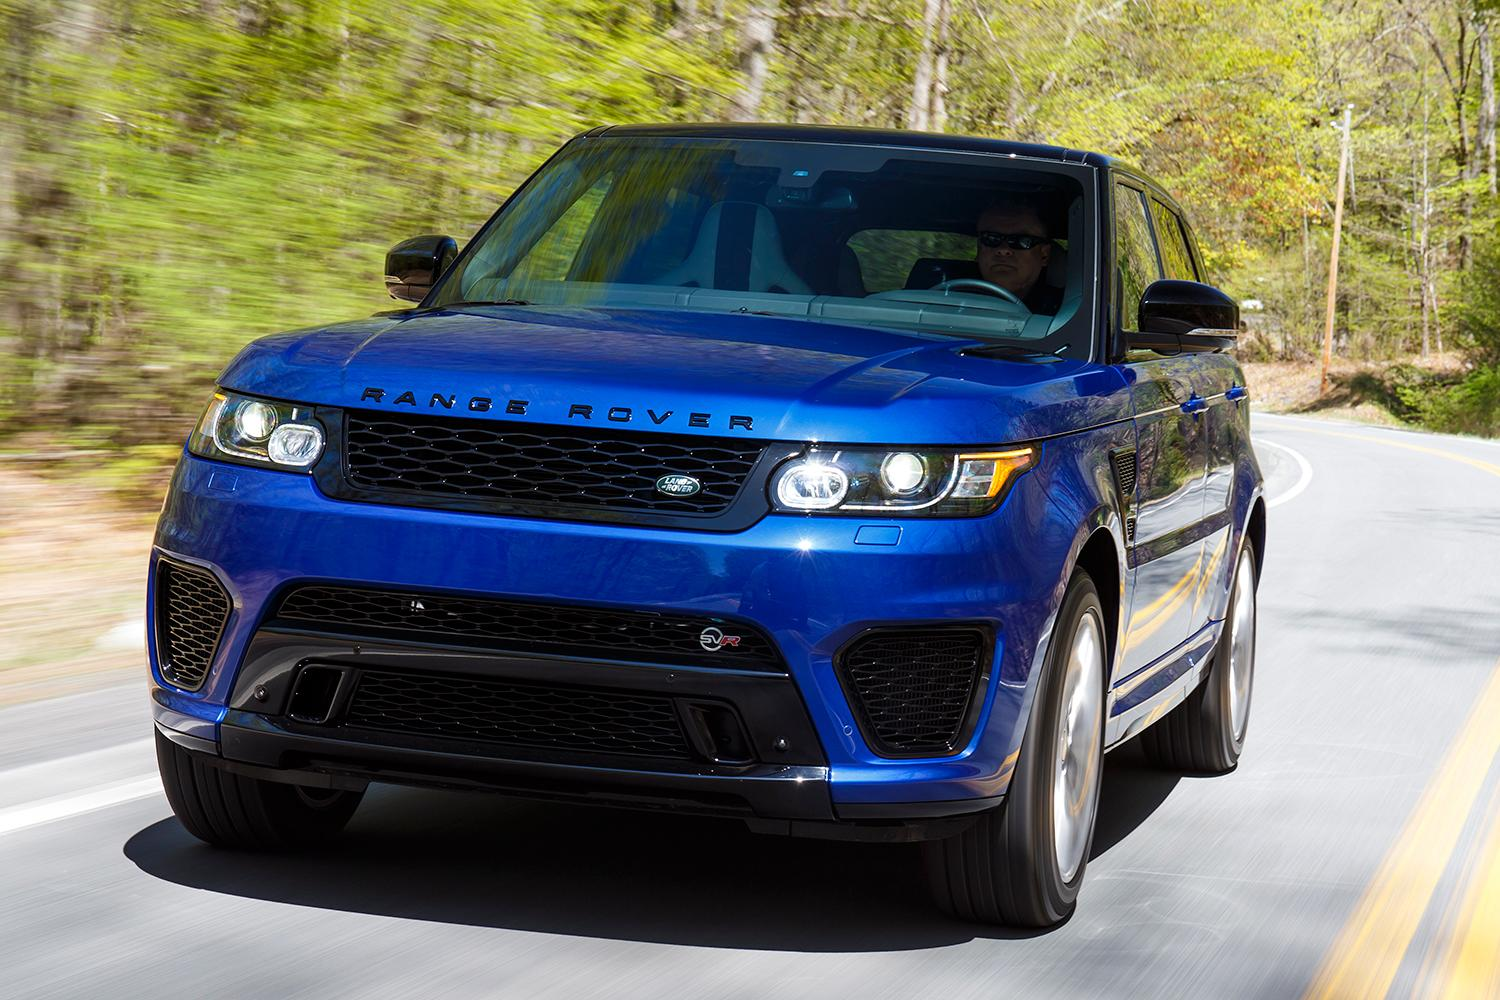 will a 575 hp v8 help the land rover range rover sport beat the porsche cayenne turbo. Black Bedroom Furniture Sets. Home Design Ideas